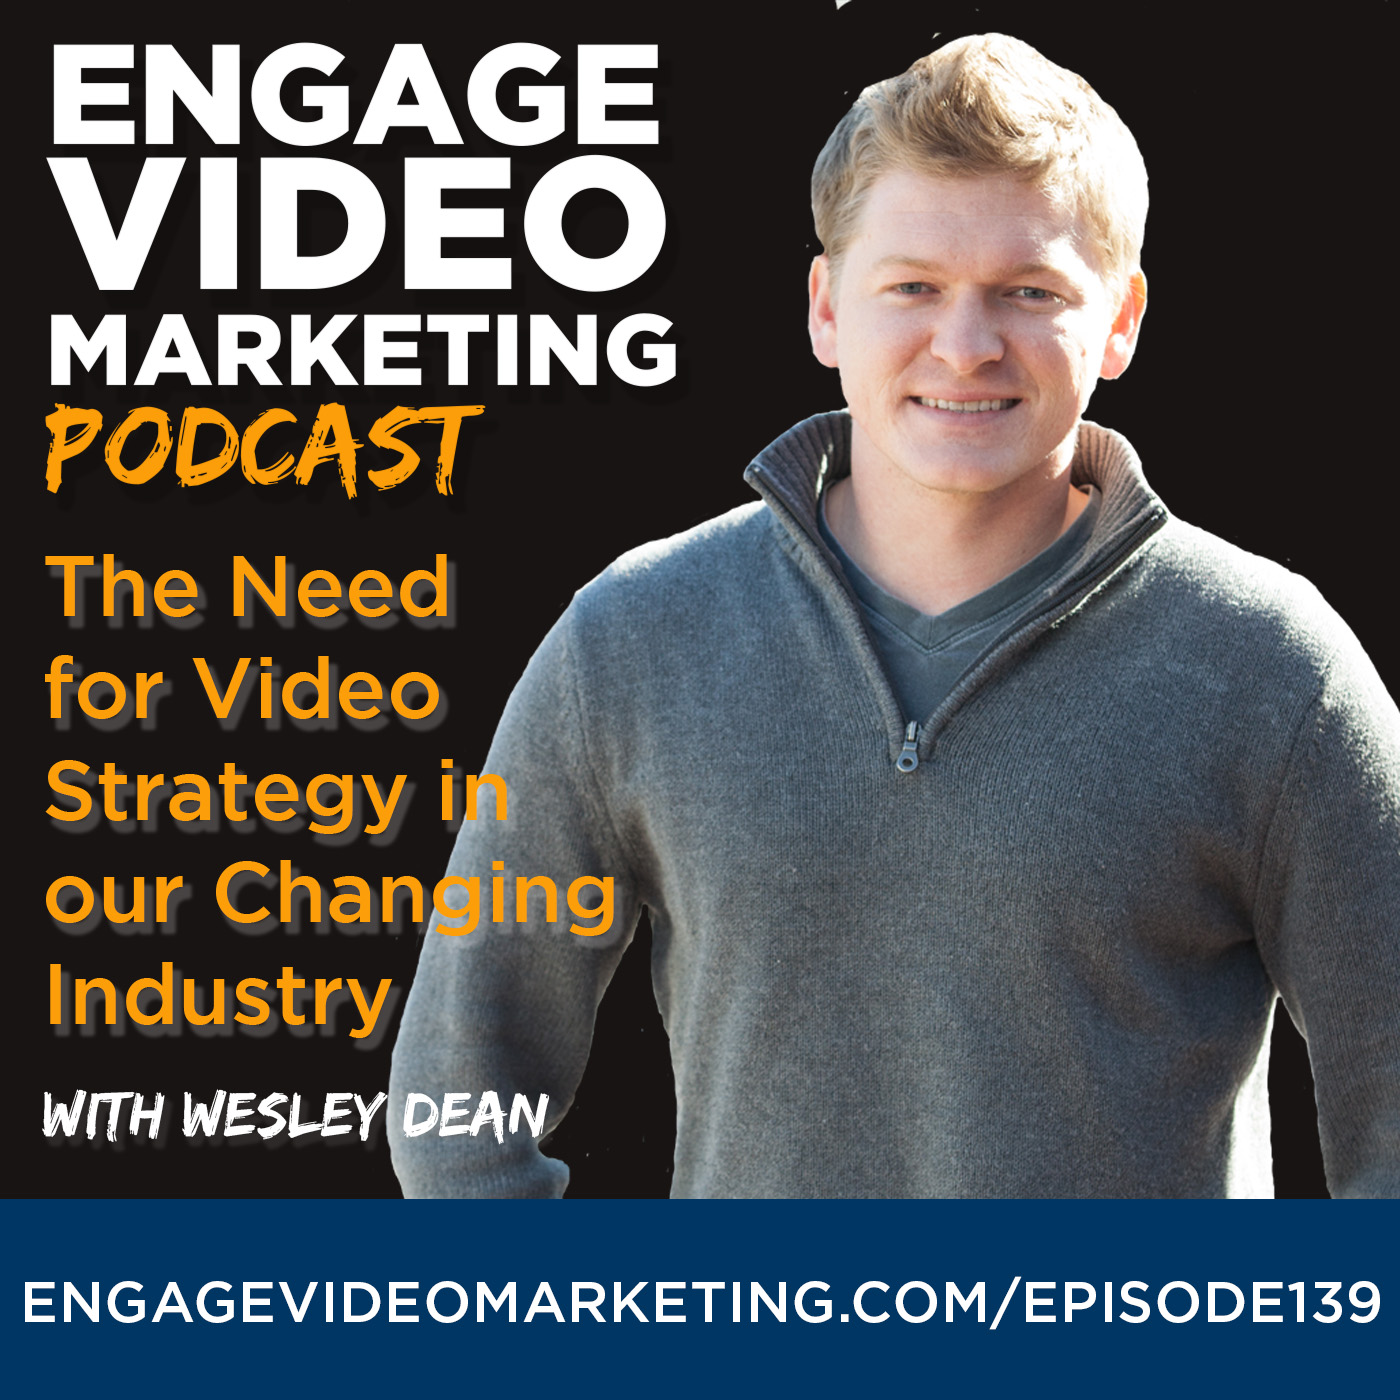 The Need for Video Strategy in our Changing Industry with Wesley Dean